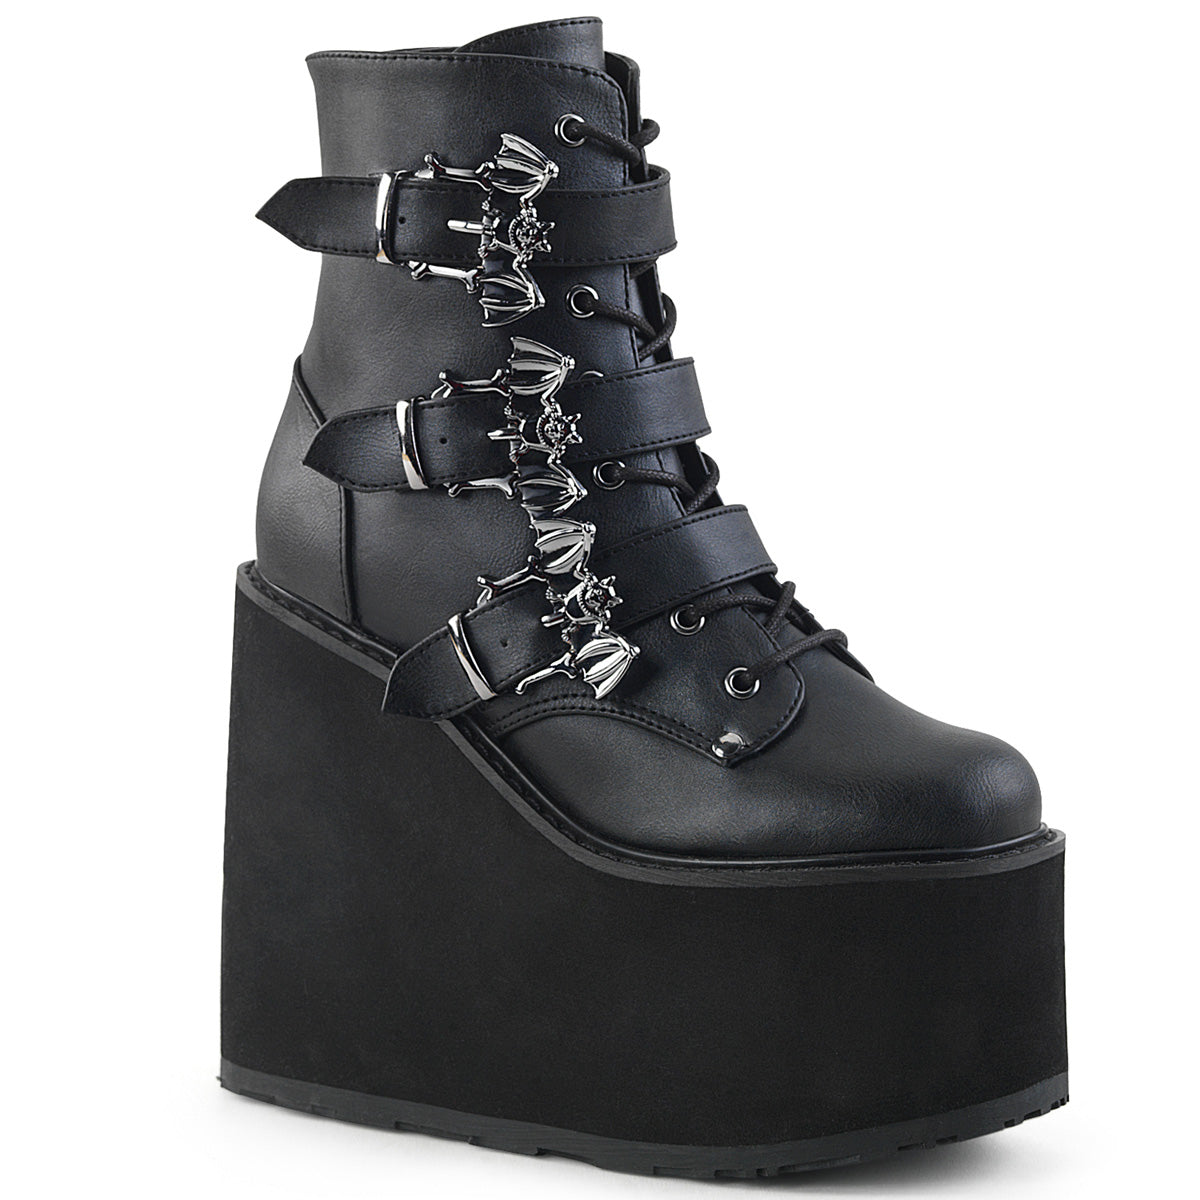 "5 1/2"" PF Lace-Up Ankle Boot w/ 3 Buckle Straps, Side Zip"